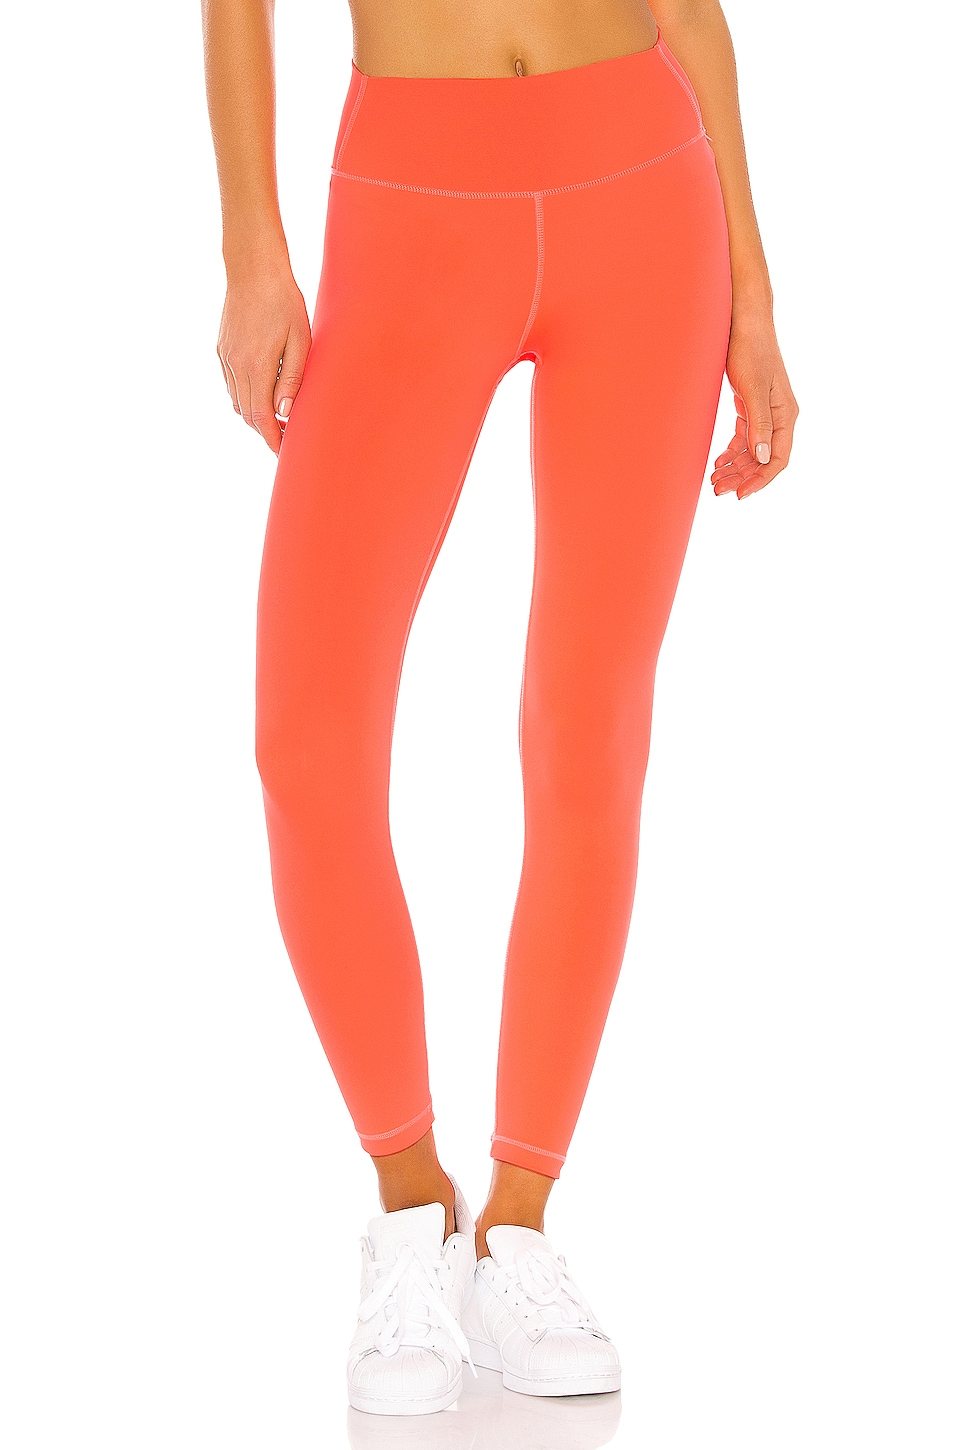 Splits59 Kinney High Waist Tight in Neon Coral